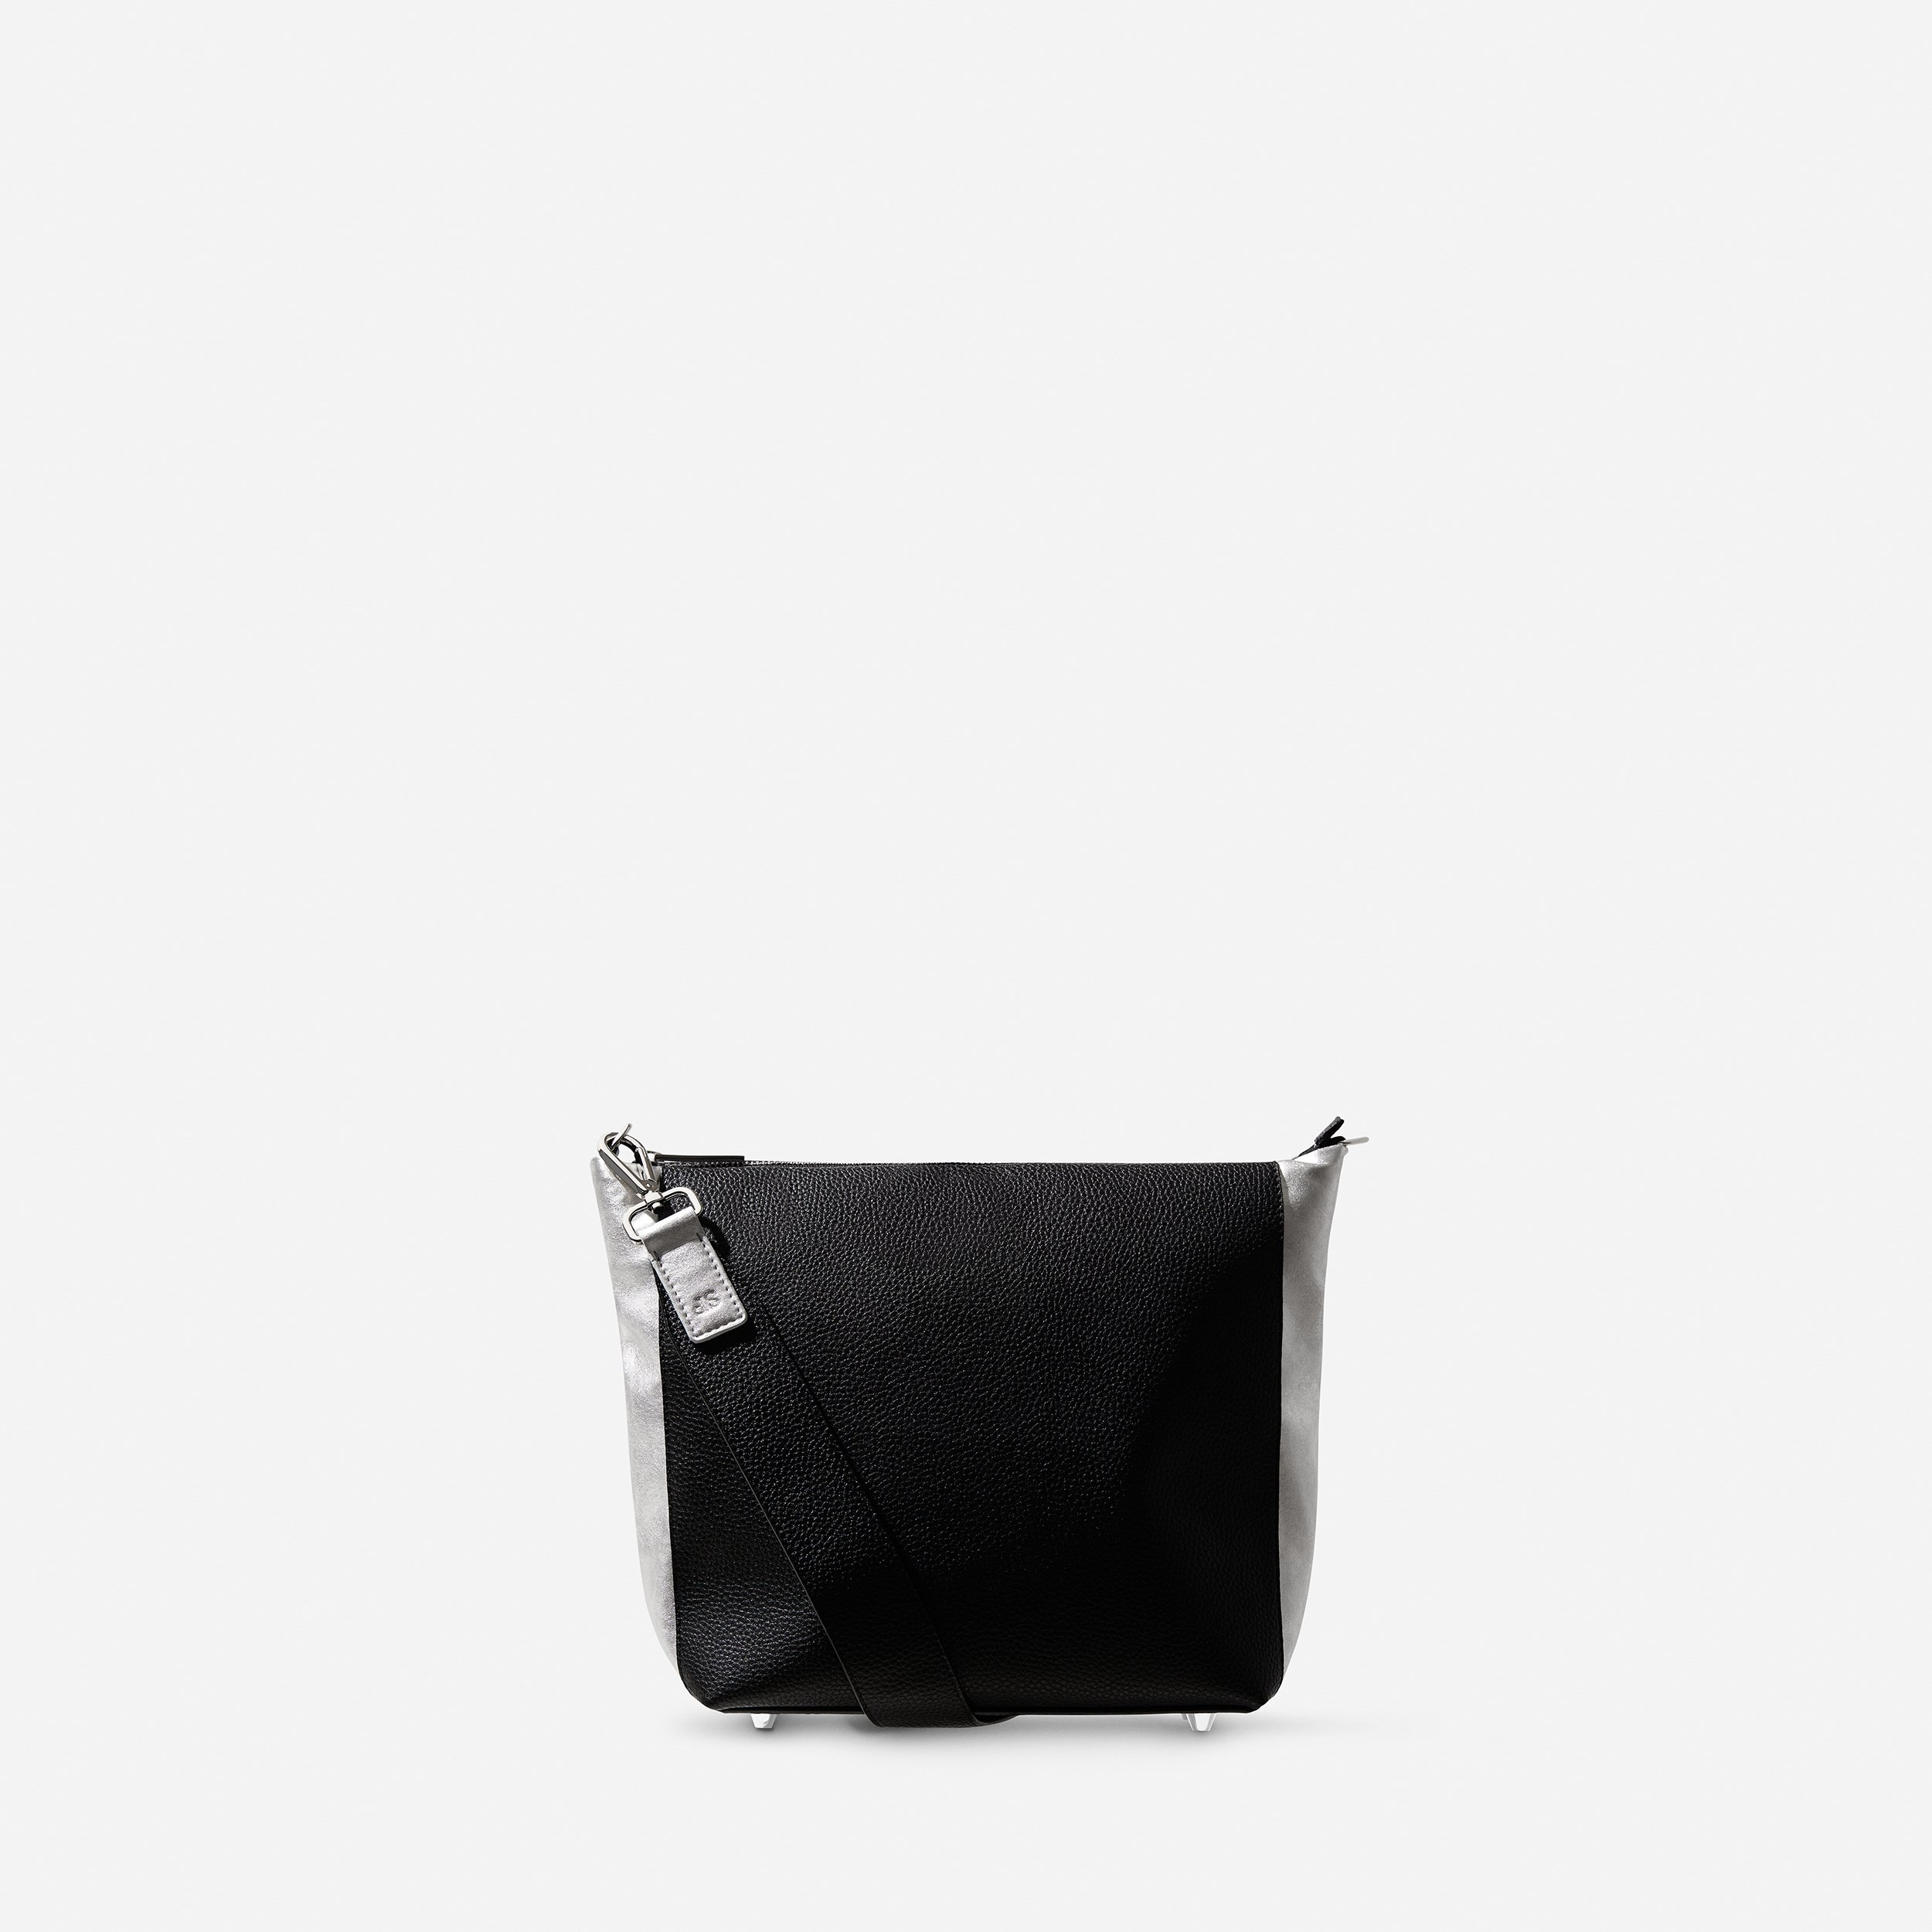 Mel x BEEN London crossbody